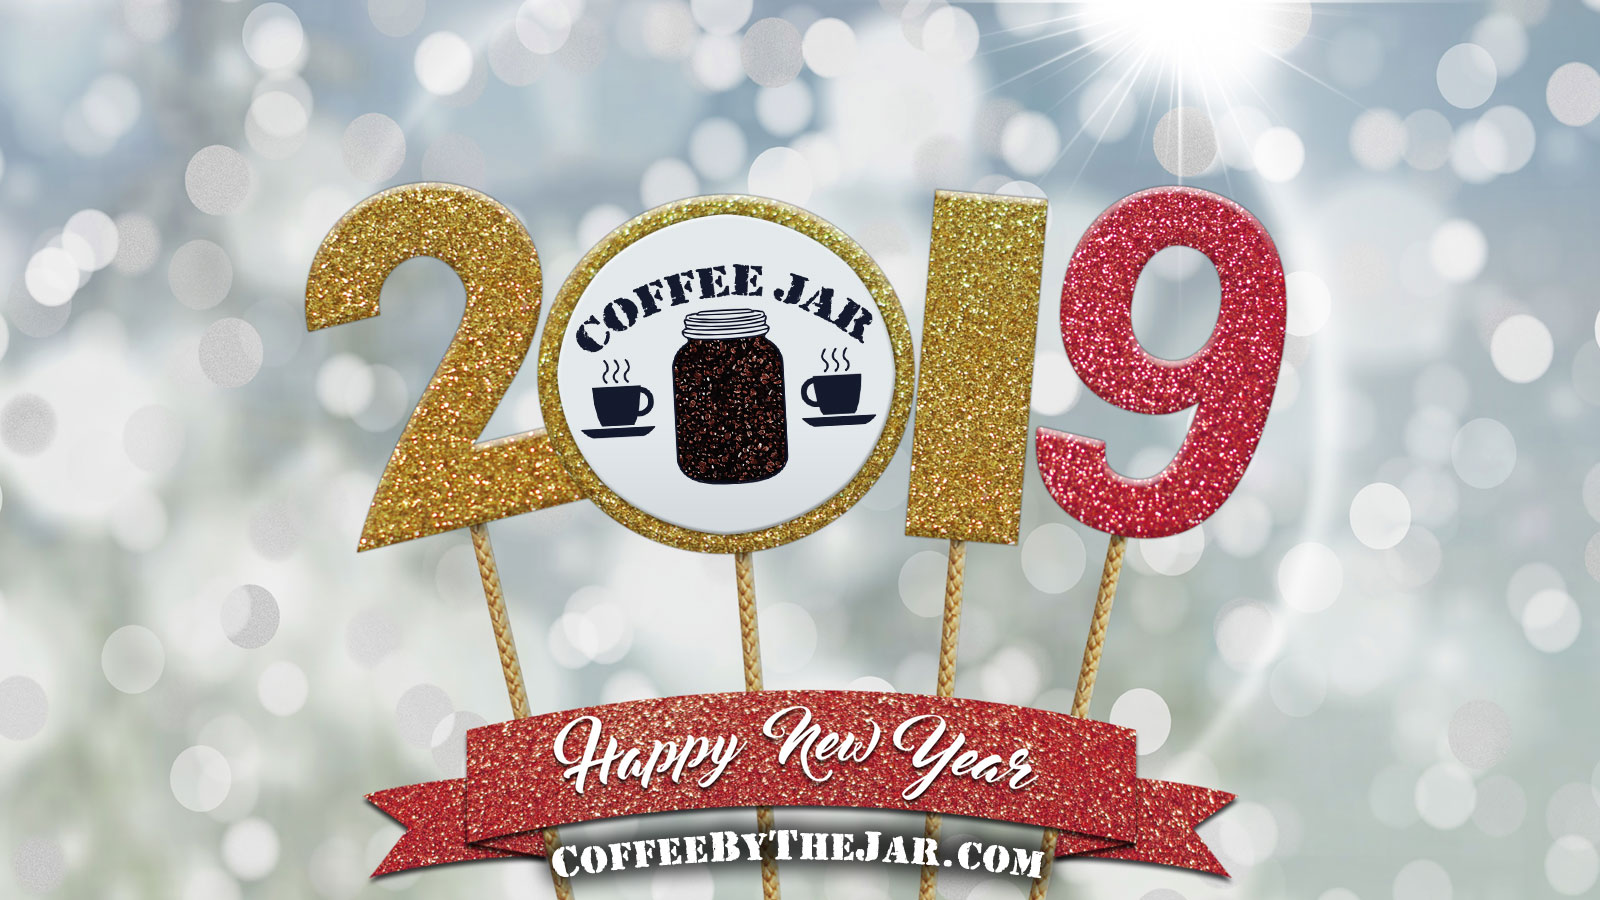 Coffee-Jar-New-Year-2019-wallpaper01-1600x900